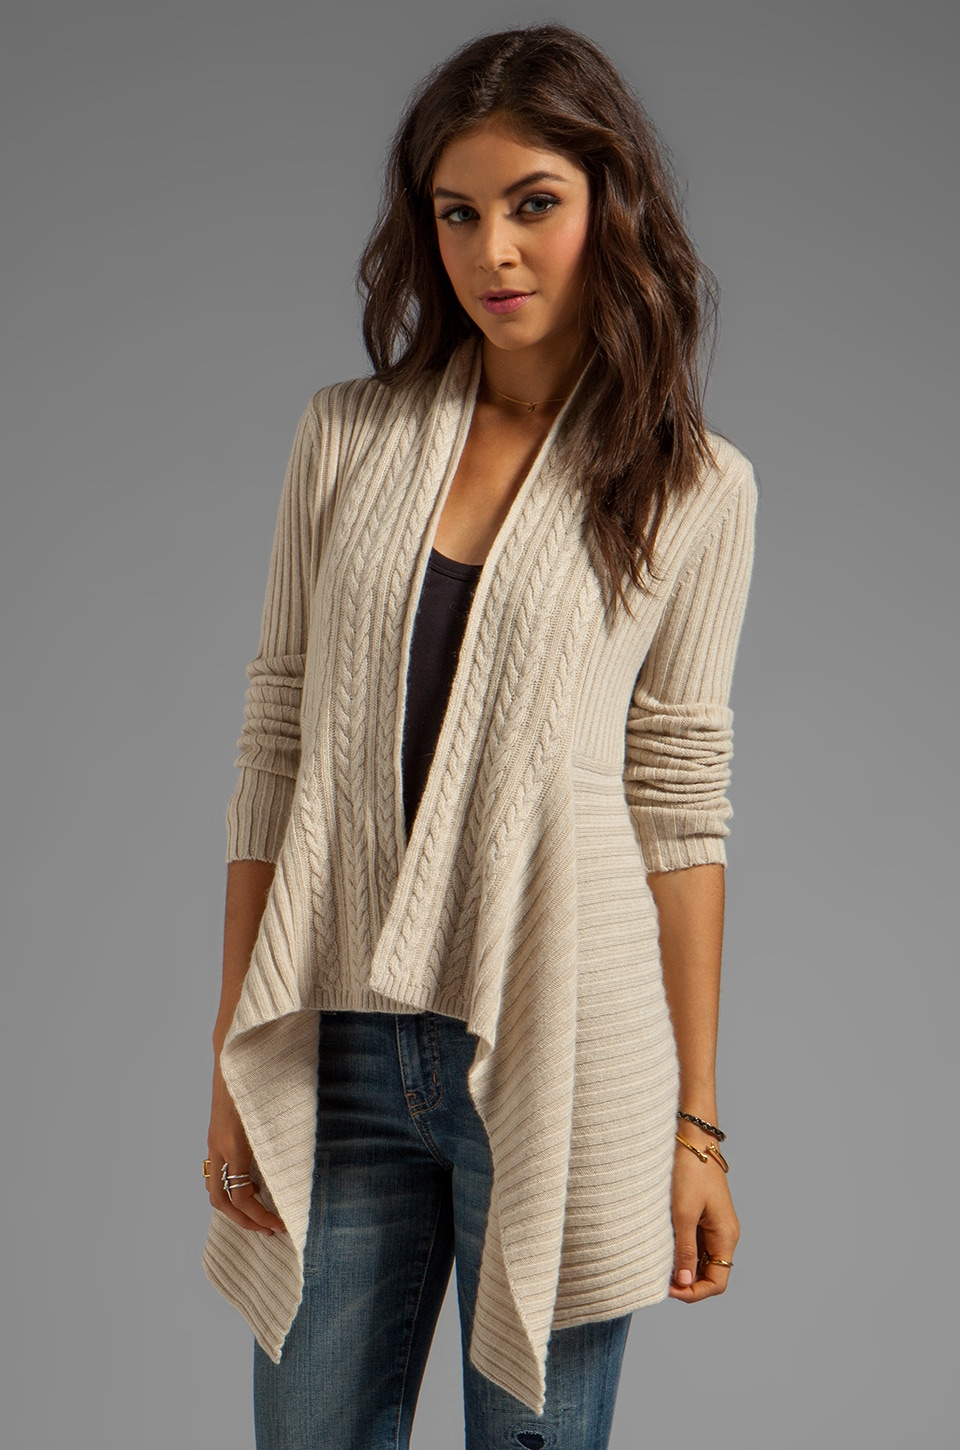 Autumn Cashmere New Rib Drape With Cable Cardigan in Parchment